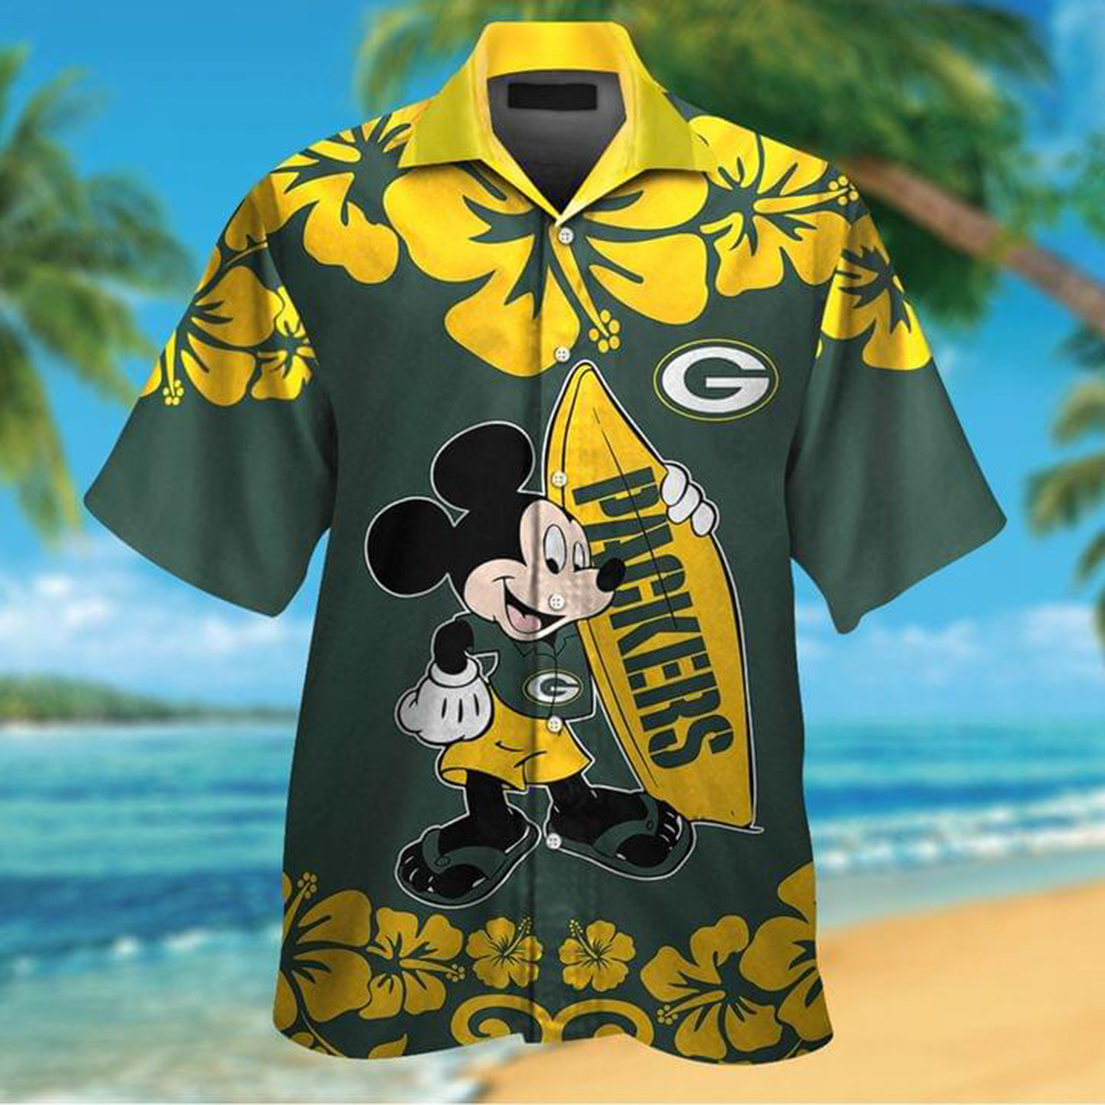 Mickey mouse and surfboard Green Bay Packers hawaiian shirt - Picture 1